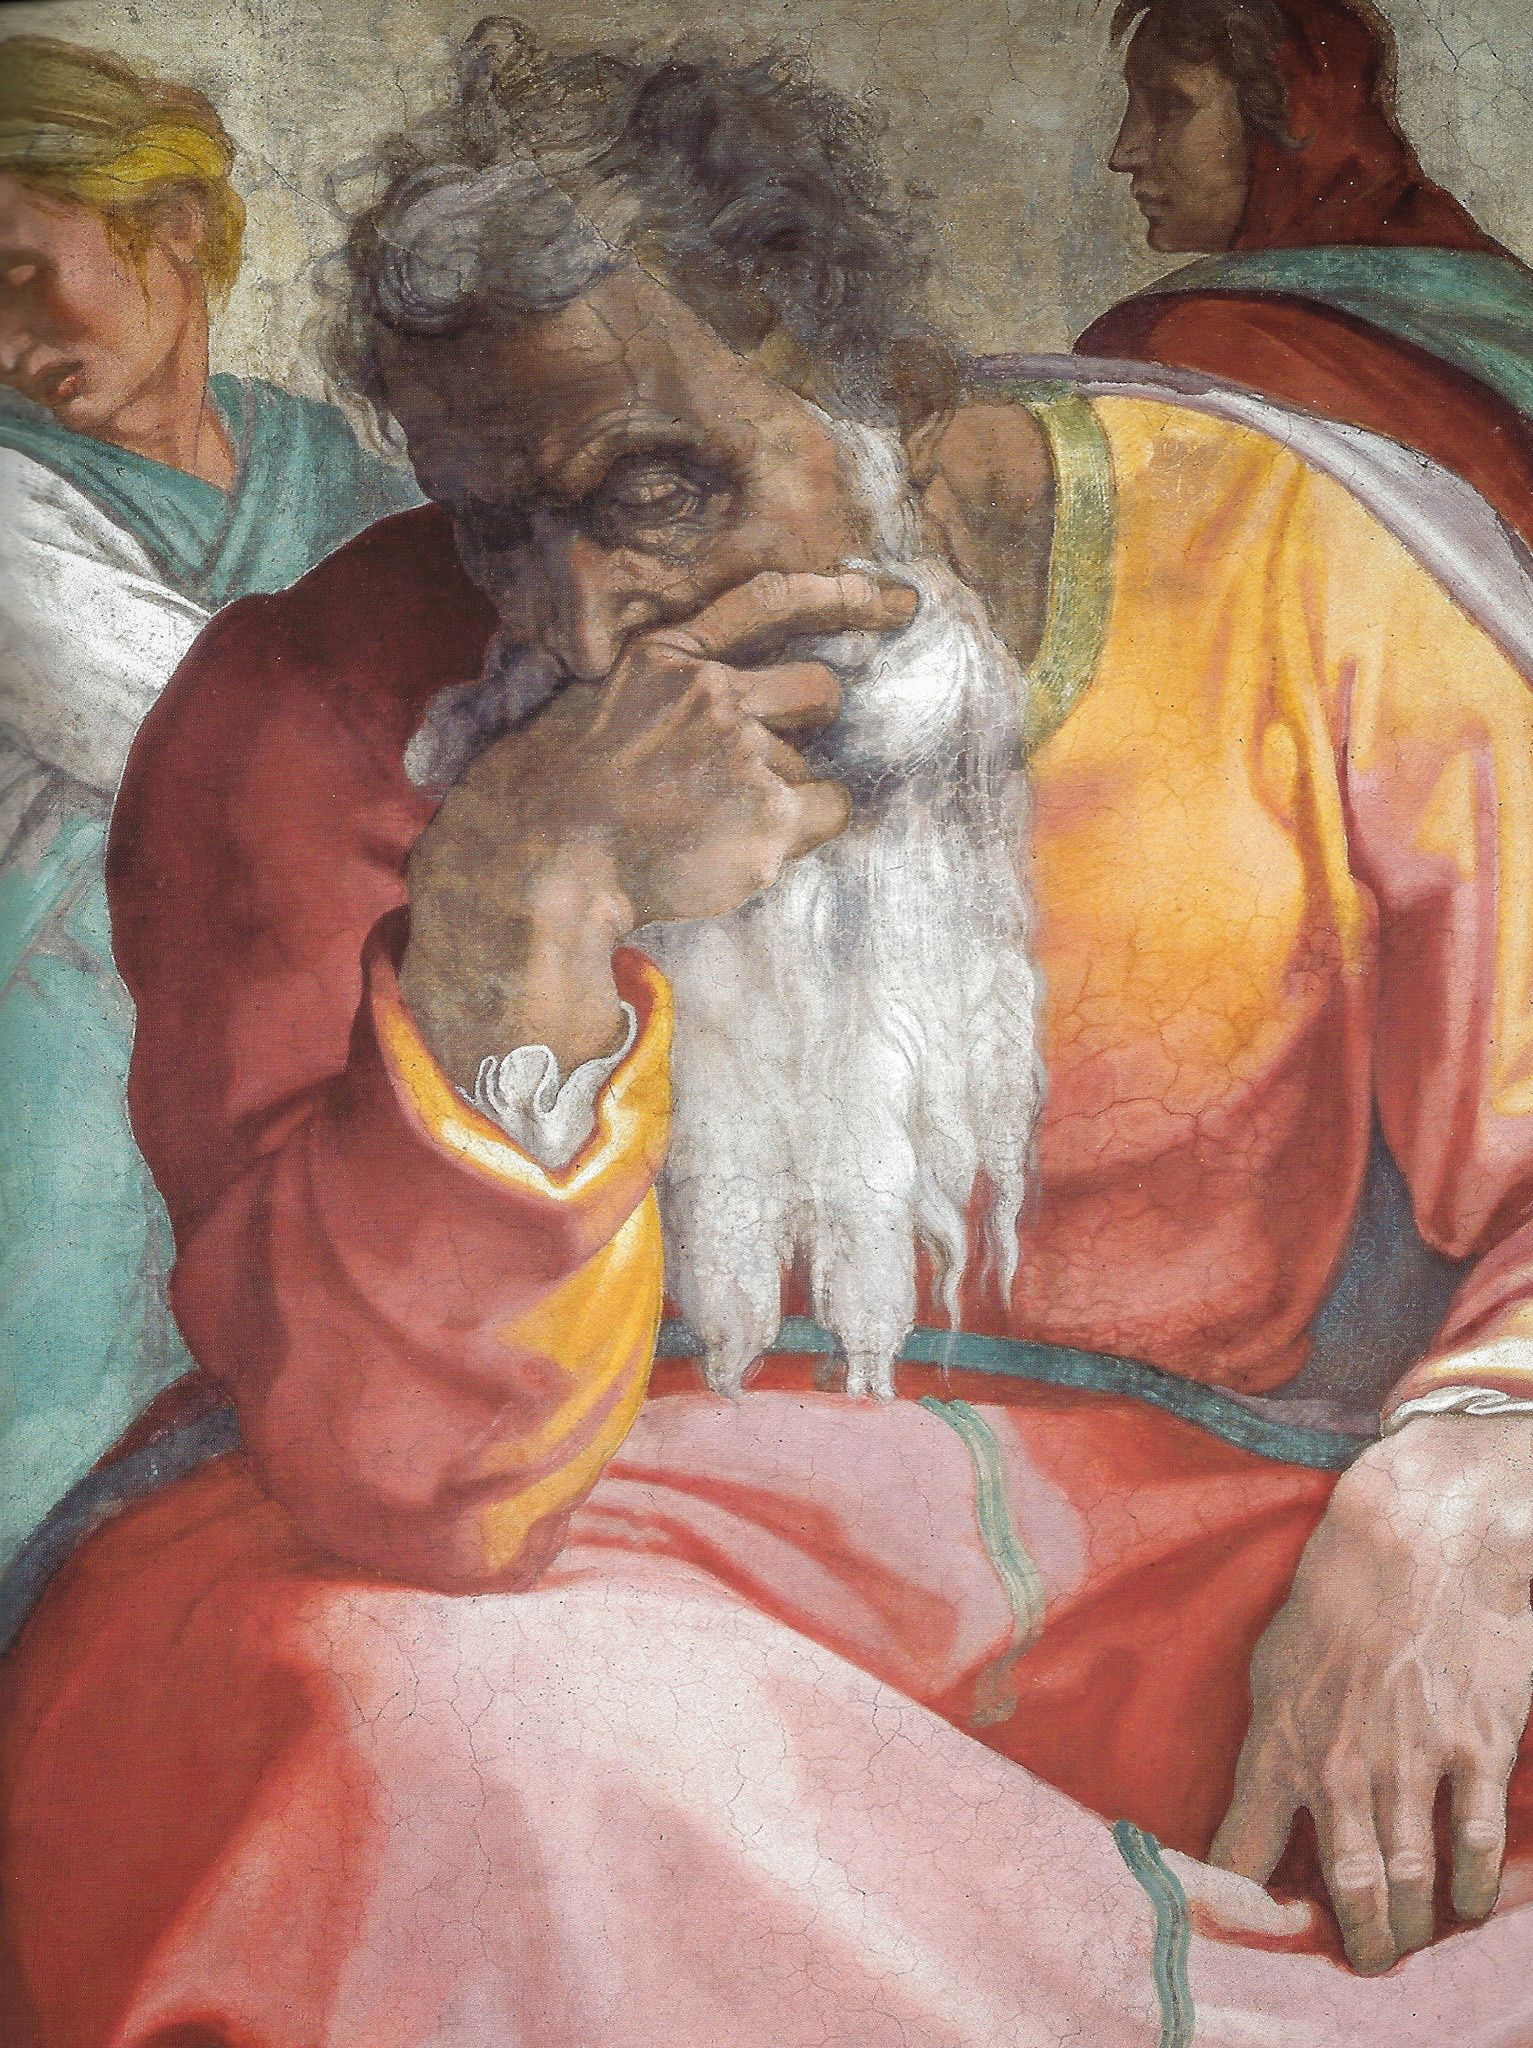 Michelangelo The Prophet Jeremiah In The Sistine Chapel The